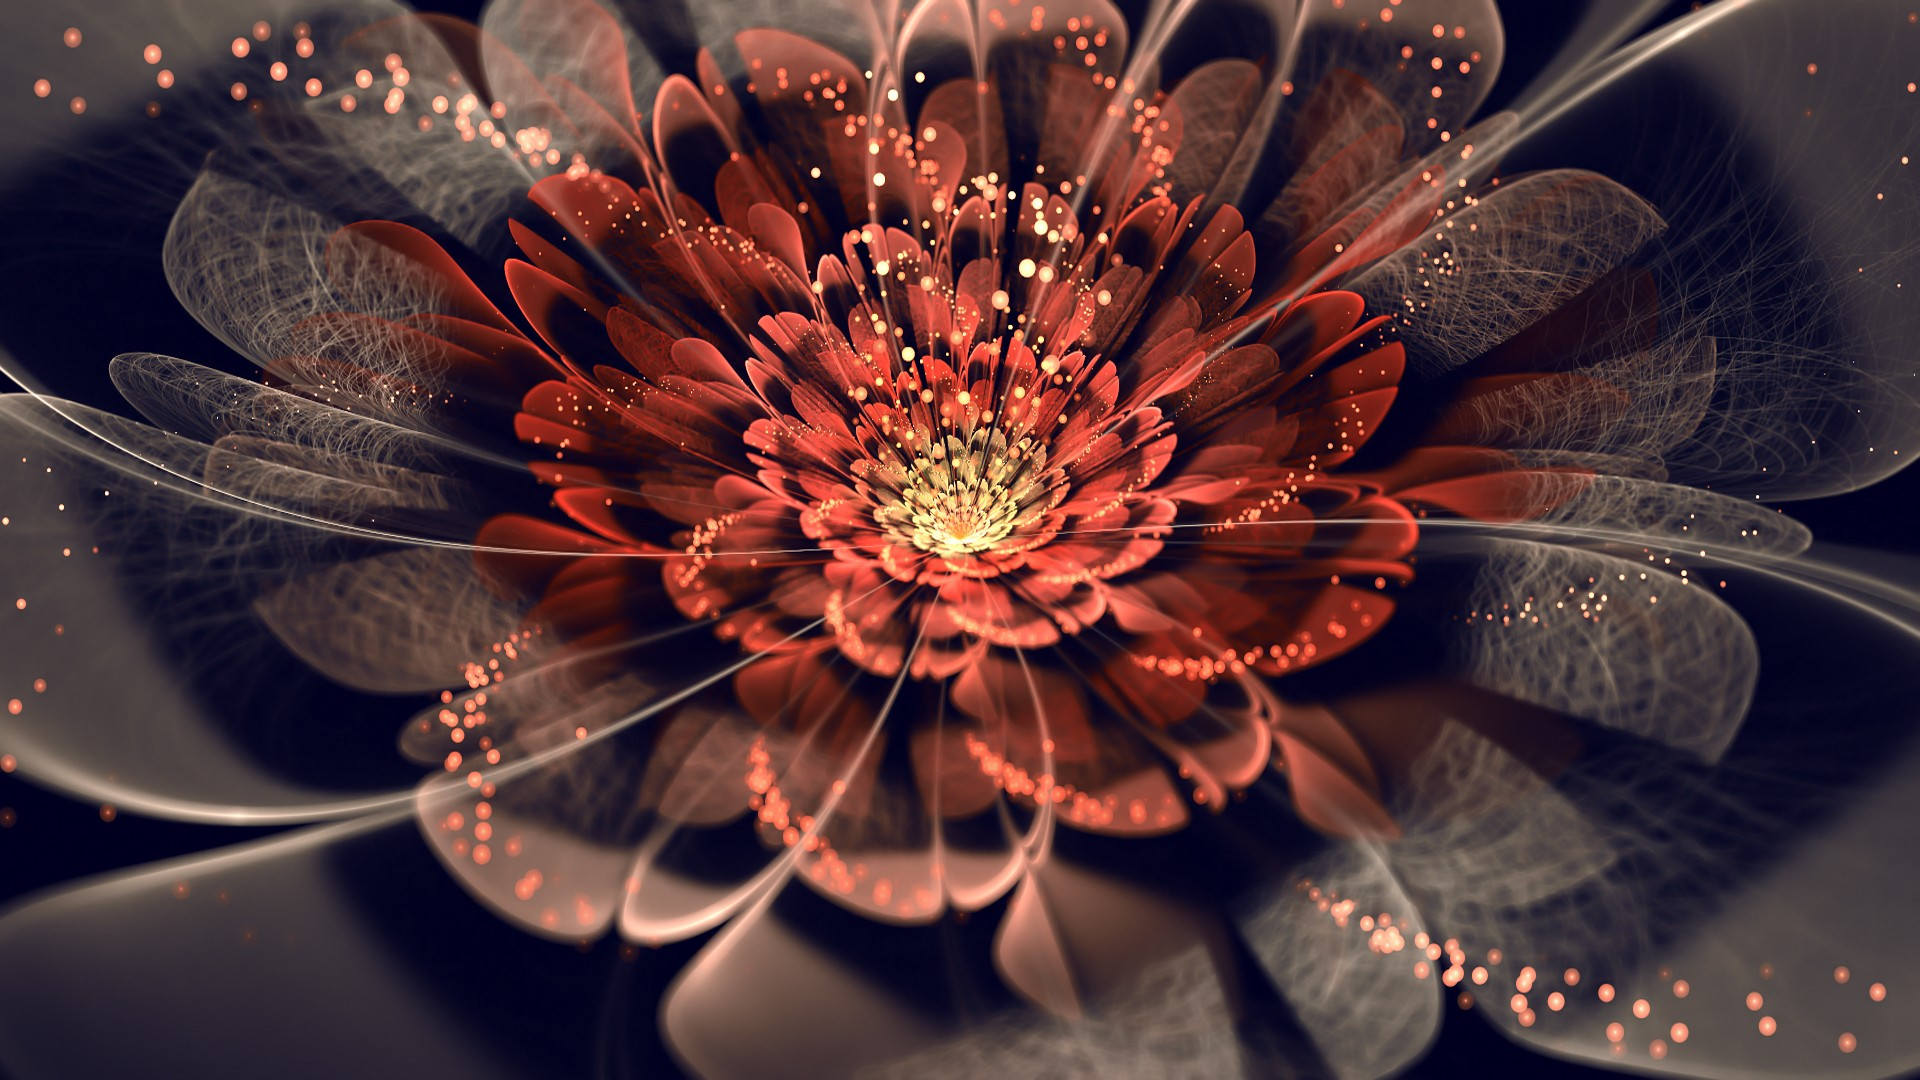 Flower bud in a fractal graphics